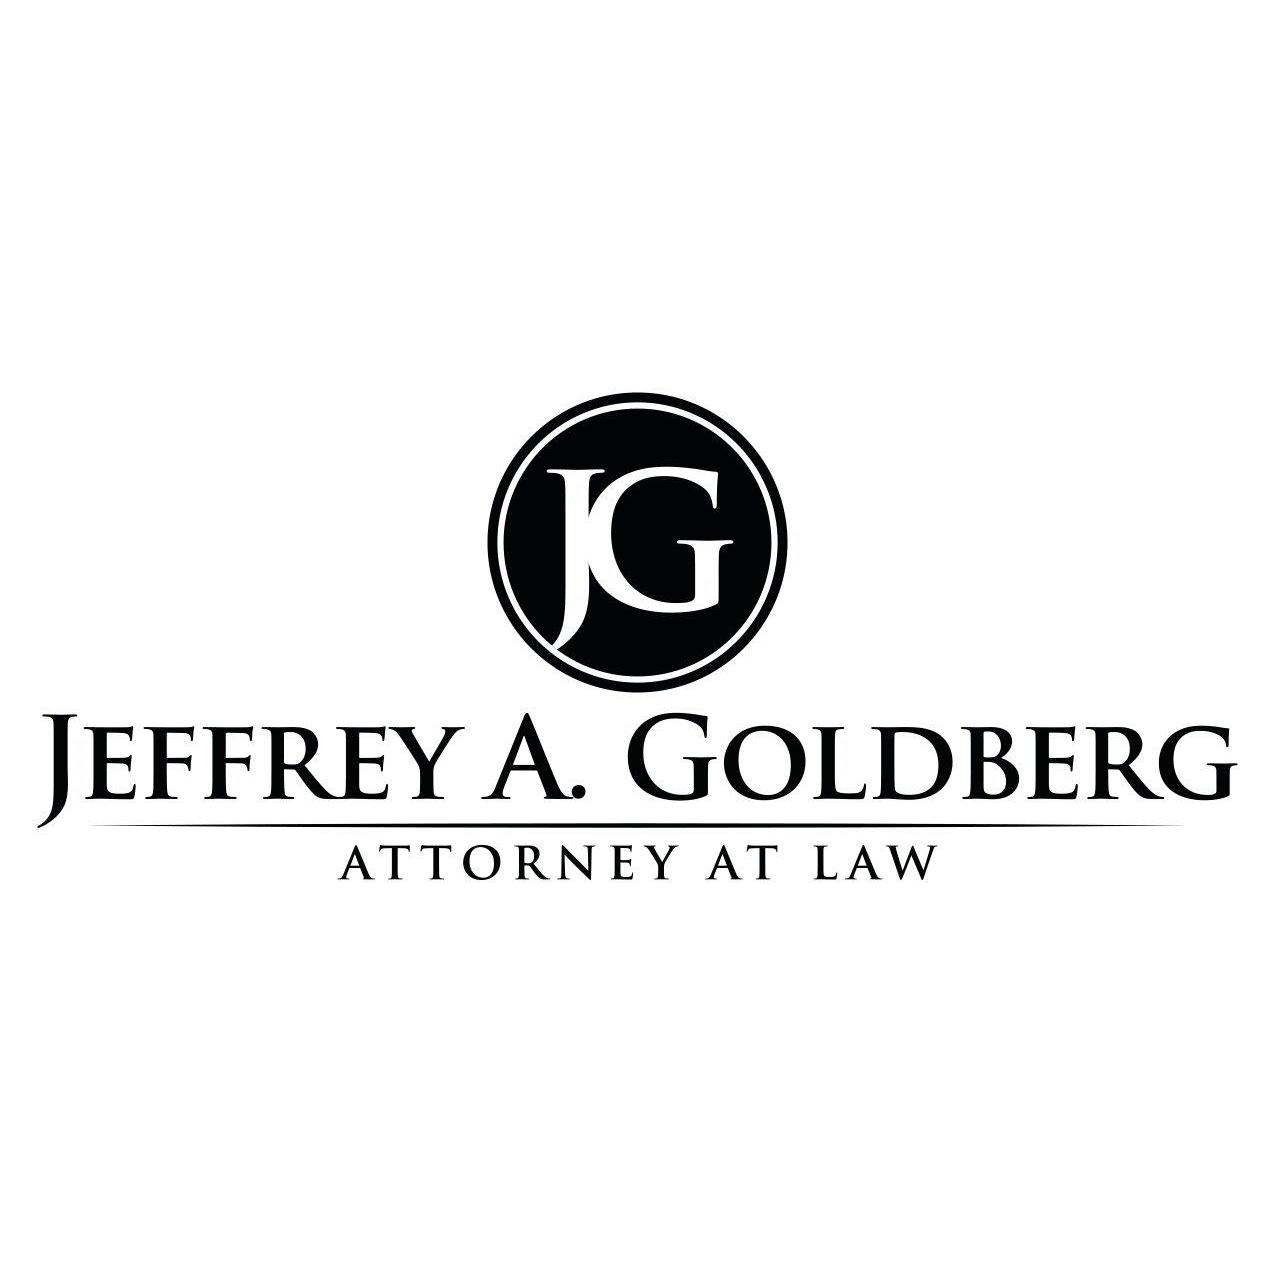 The Law Office of Jeffrey A. Goldberg